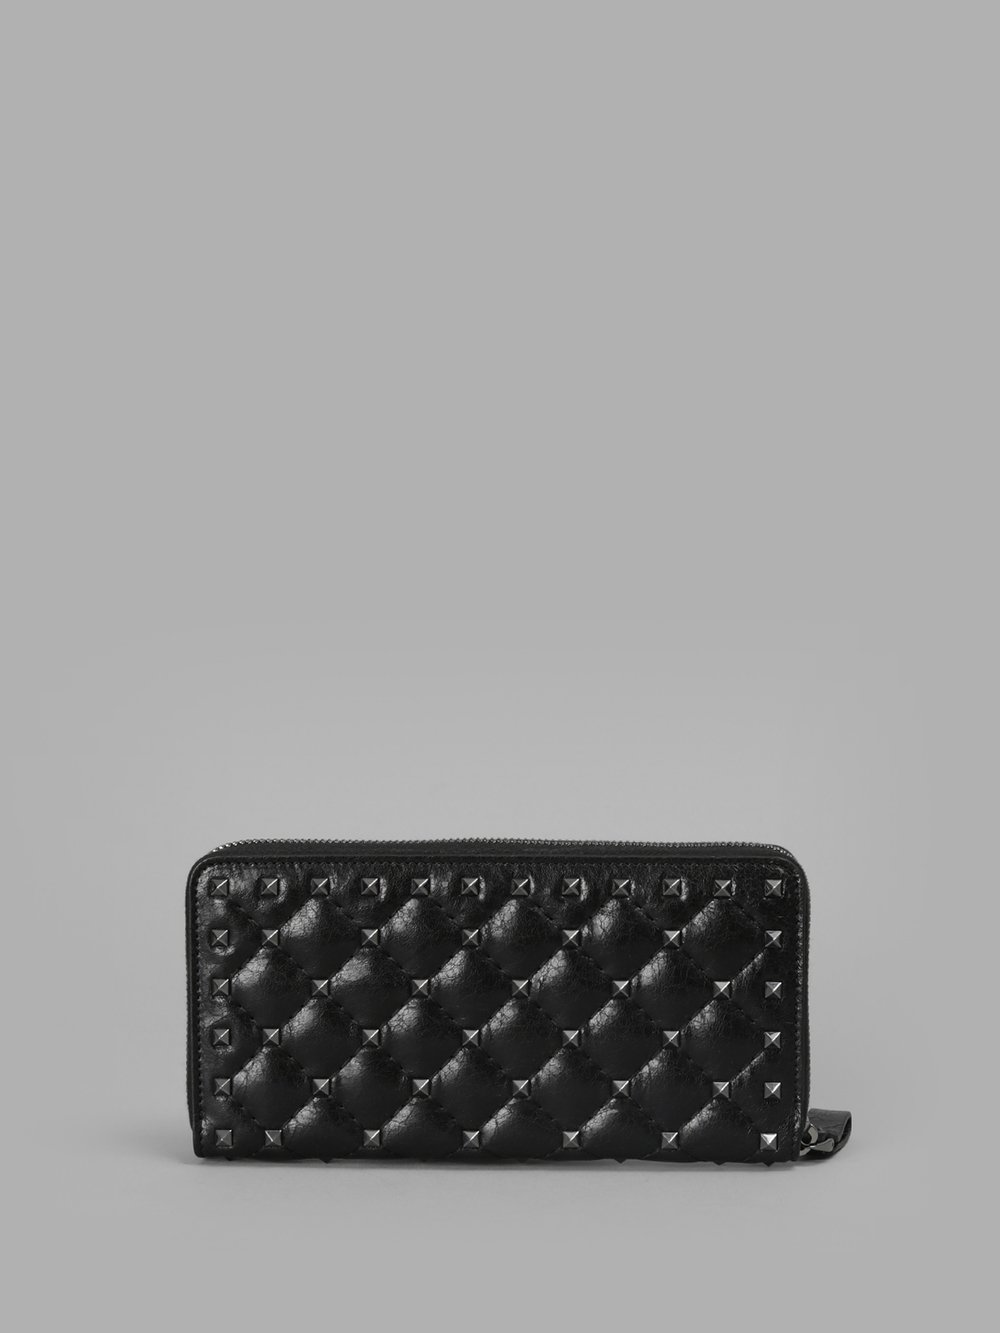 VALENTINO WOMEN'S BLACK MATELASSE' FRENCH WALLET WITH SPIKE ROCKSTUDS